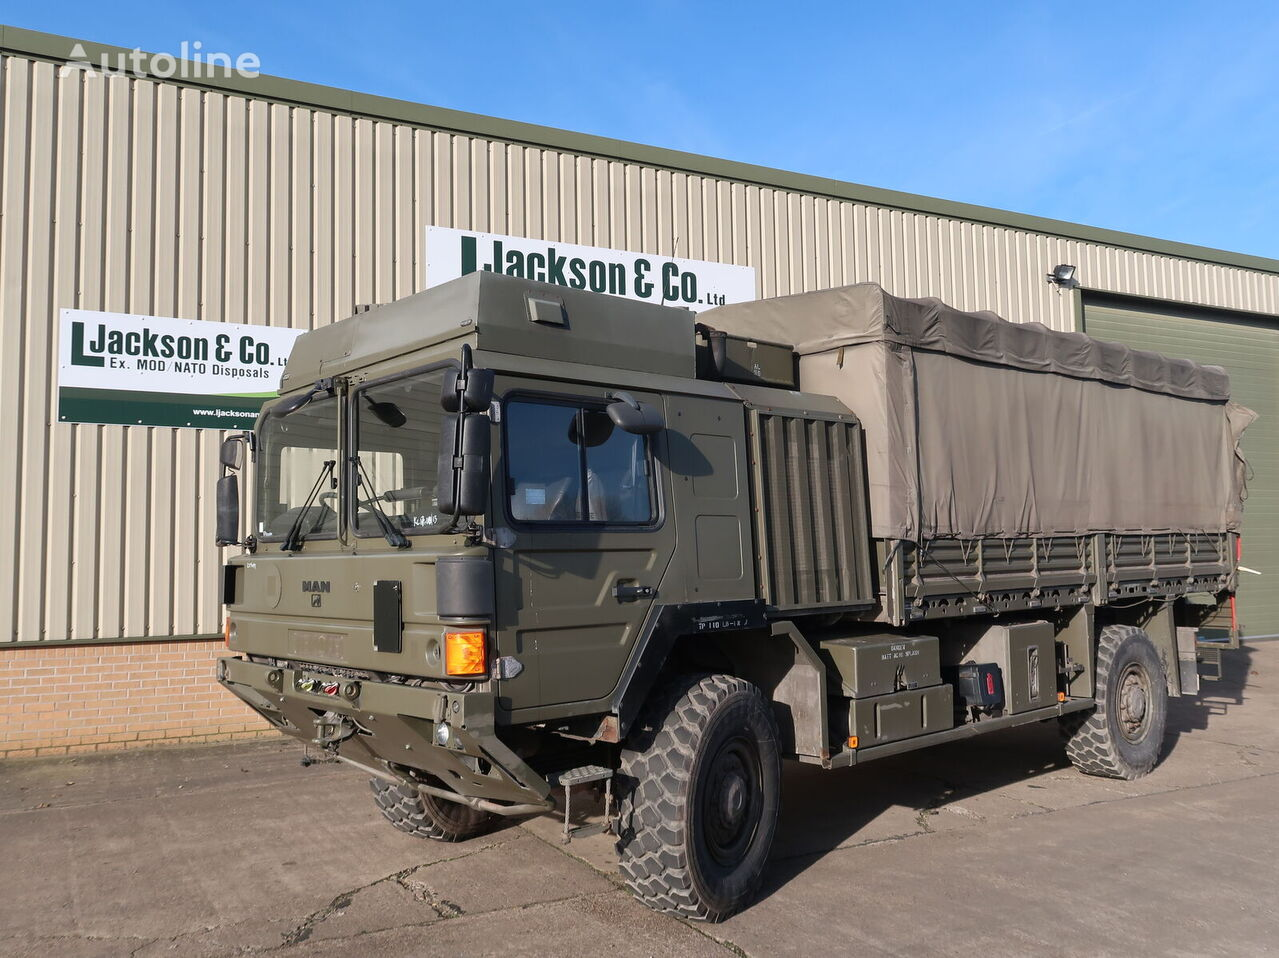 camion militaire MAN HX60 18.330 4x4 Army Truck